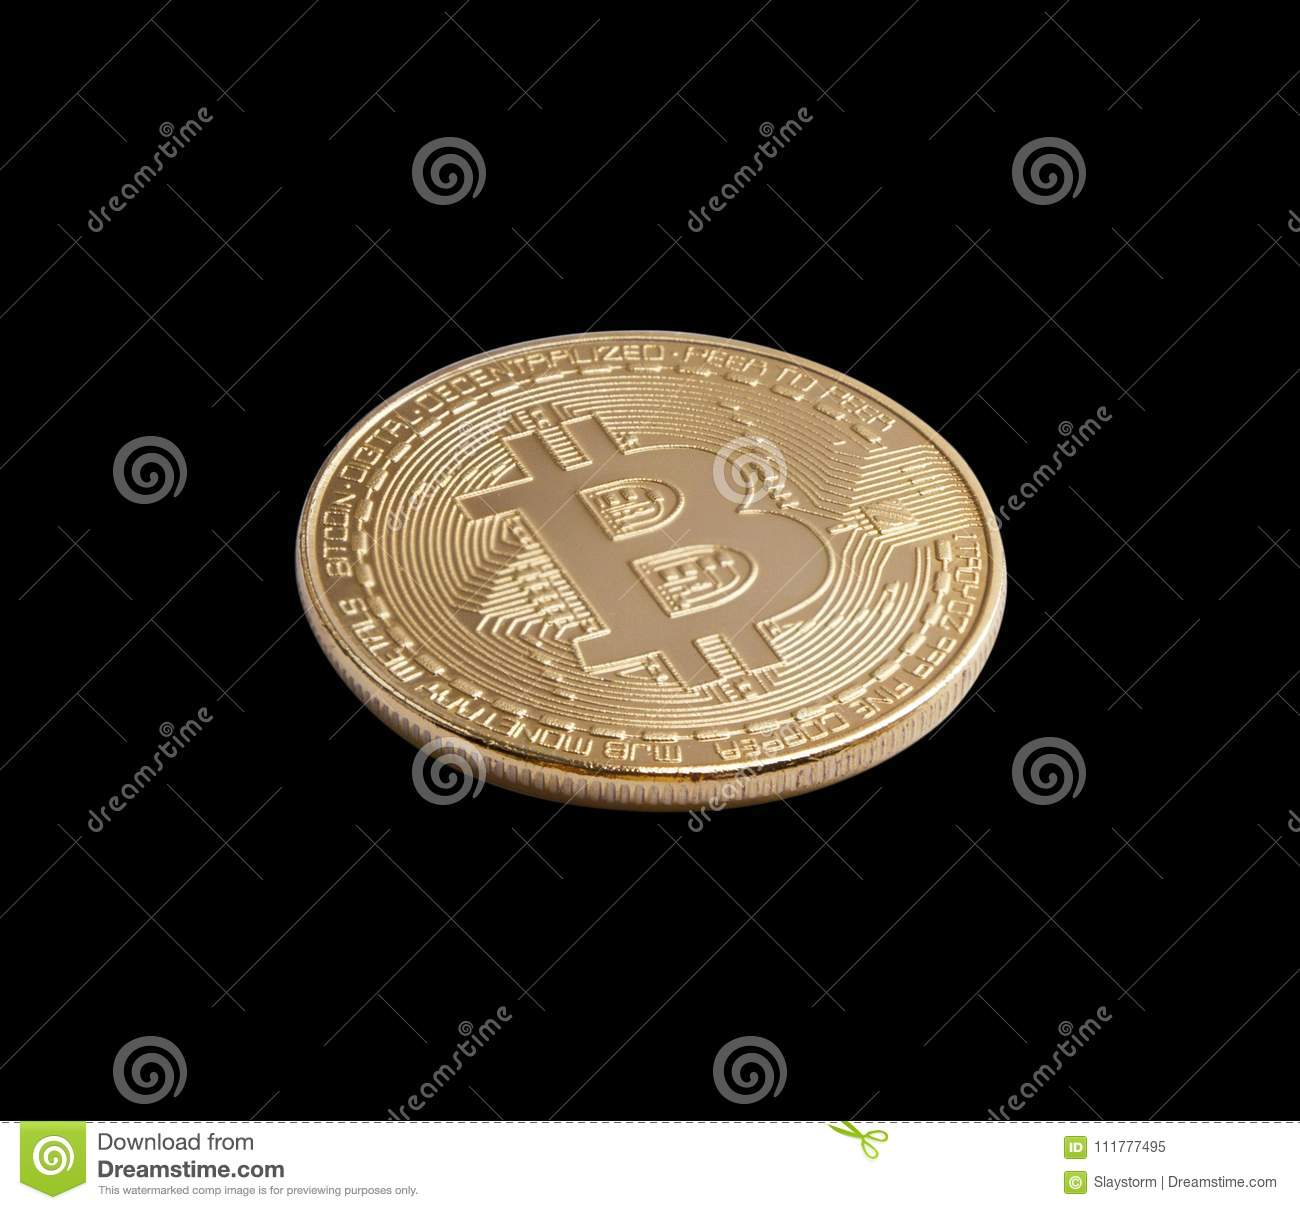 Bitcoin. Golden bitcoin isolated on black background